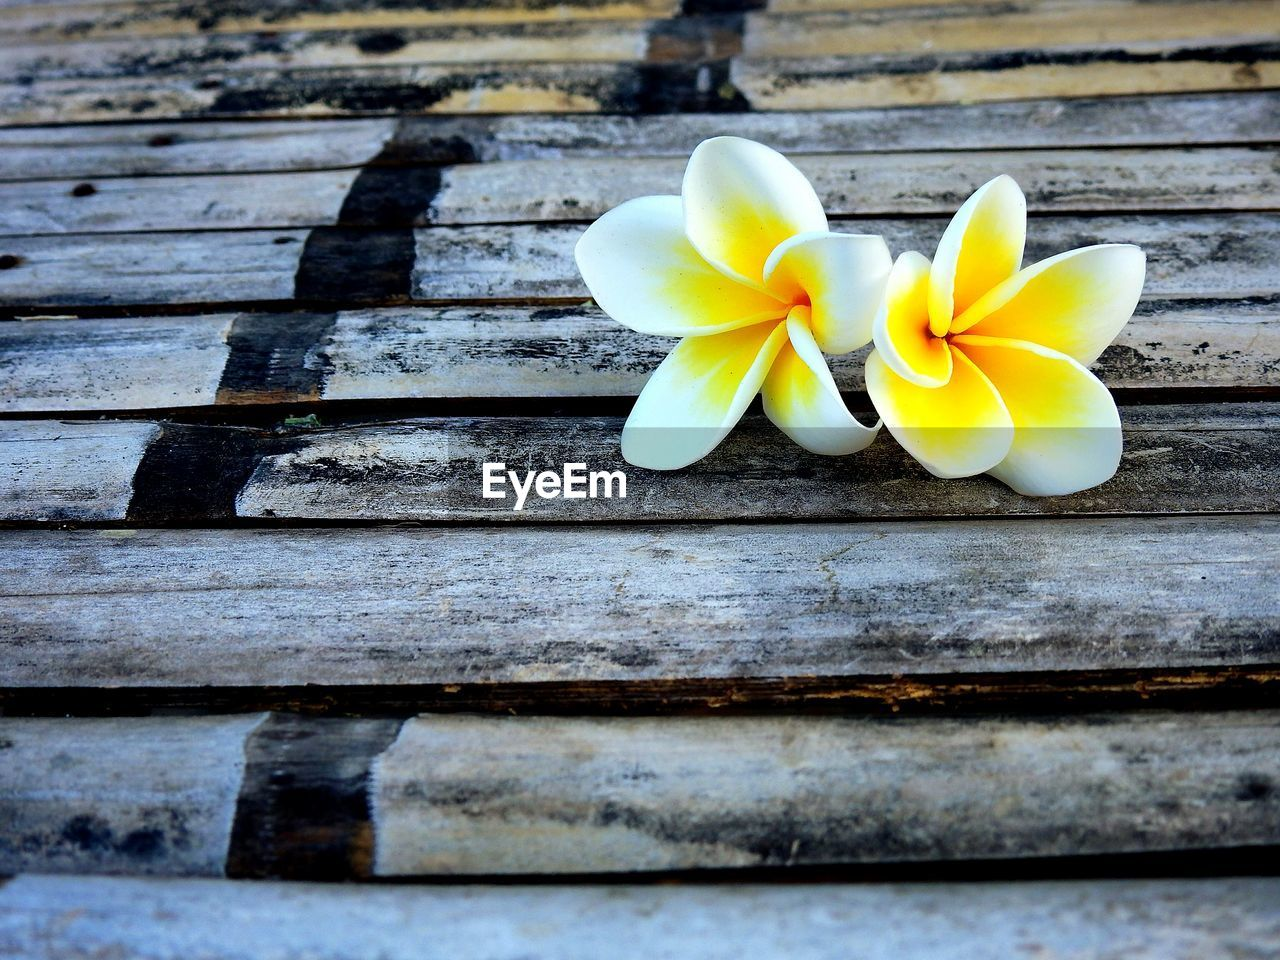 flower, frangipani, petal, wood - material, flower head, no people, fragility, yellow, freshness, beauty in nature, day, nature, outdoors, close-up